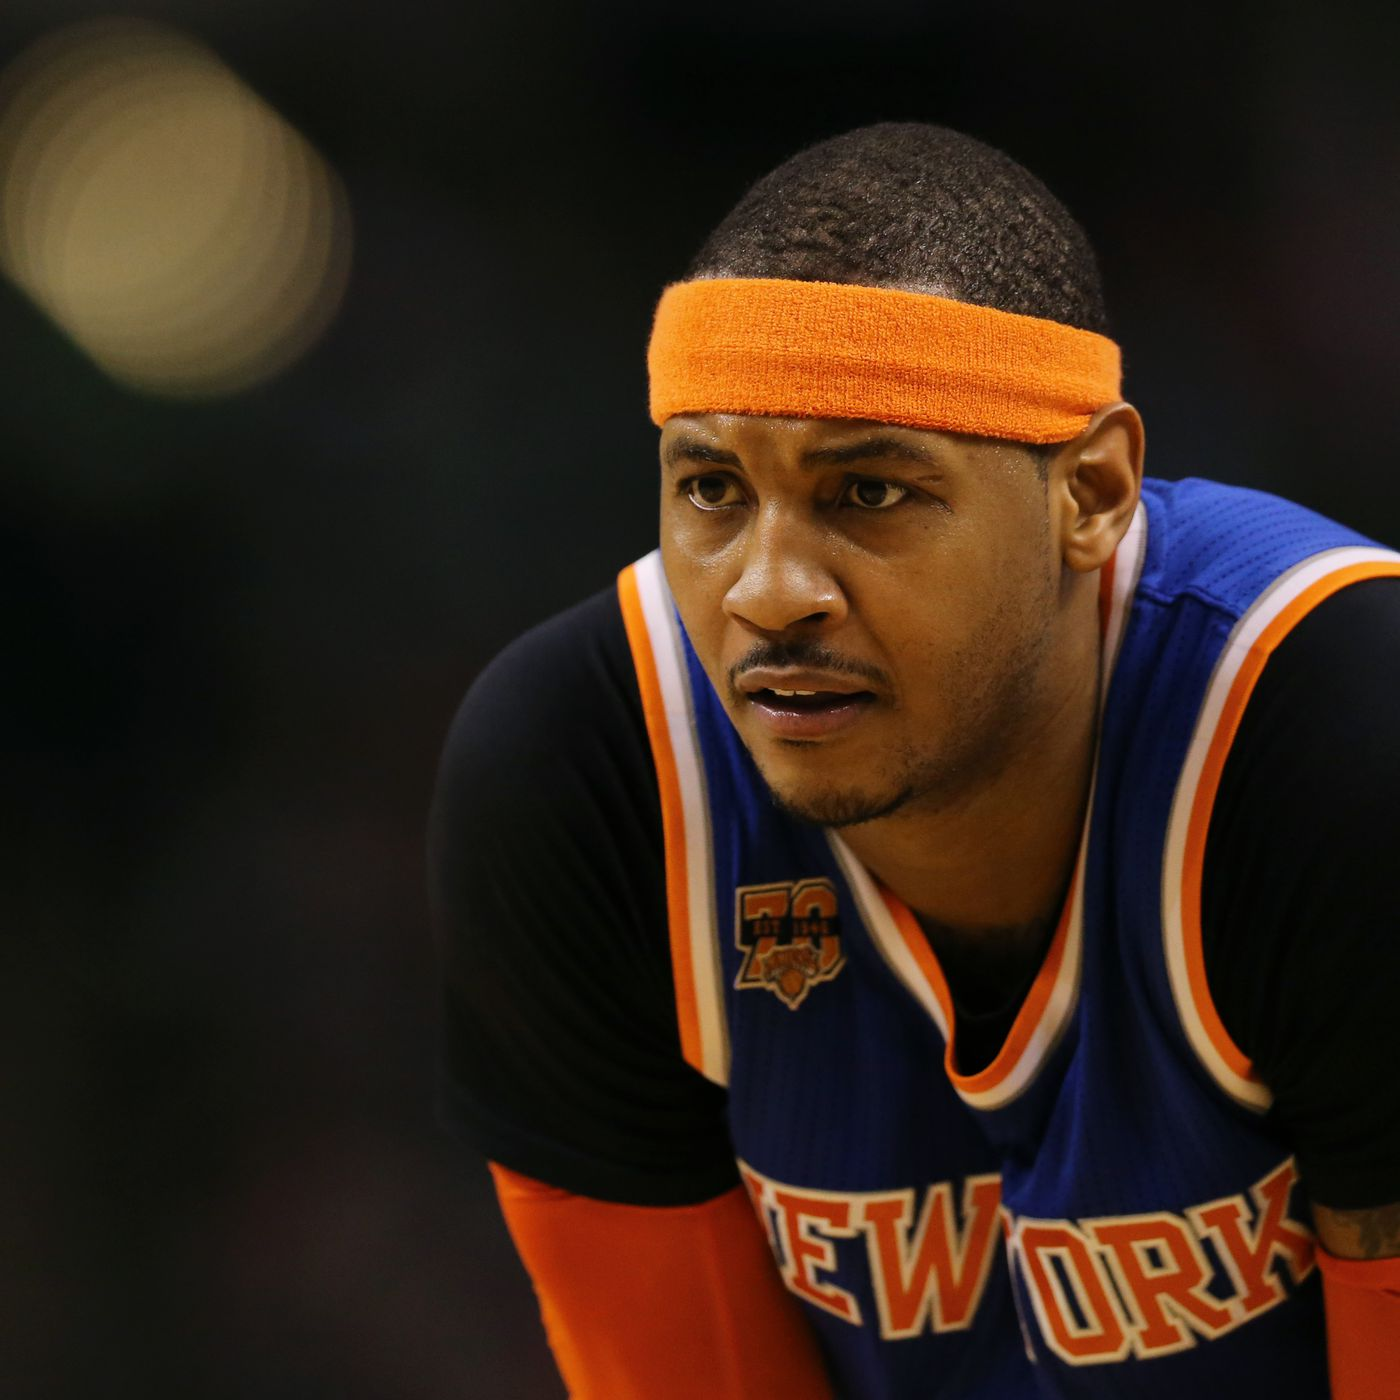 e1d3b38681f Carmelo Anthony trade rumors are being initiated by the Knicks